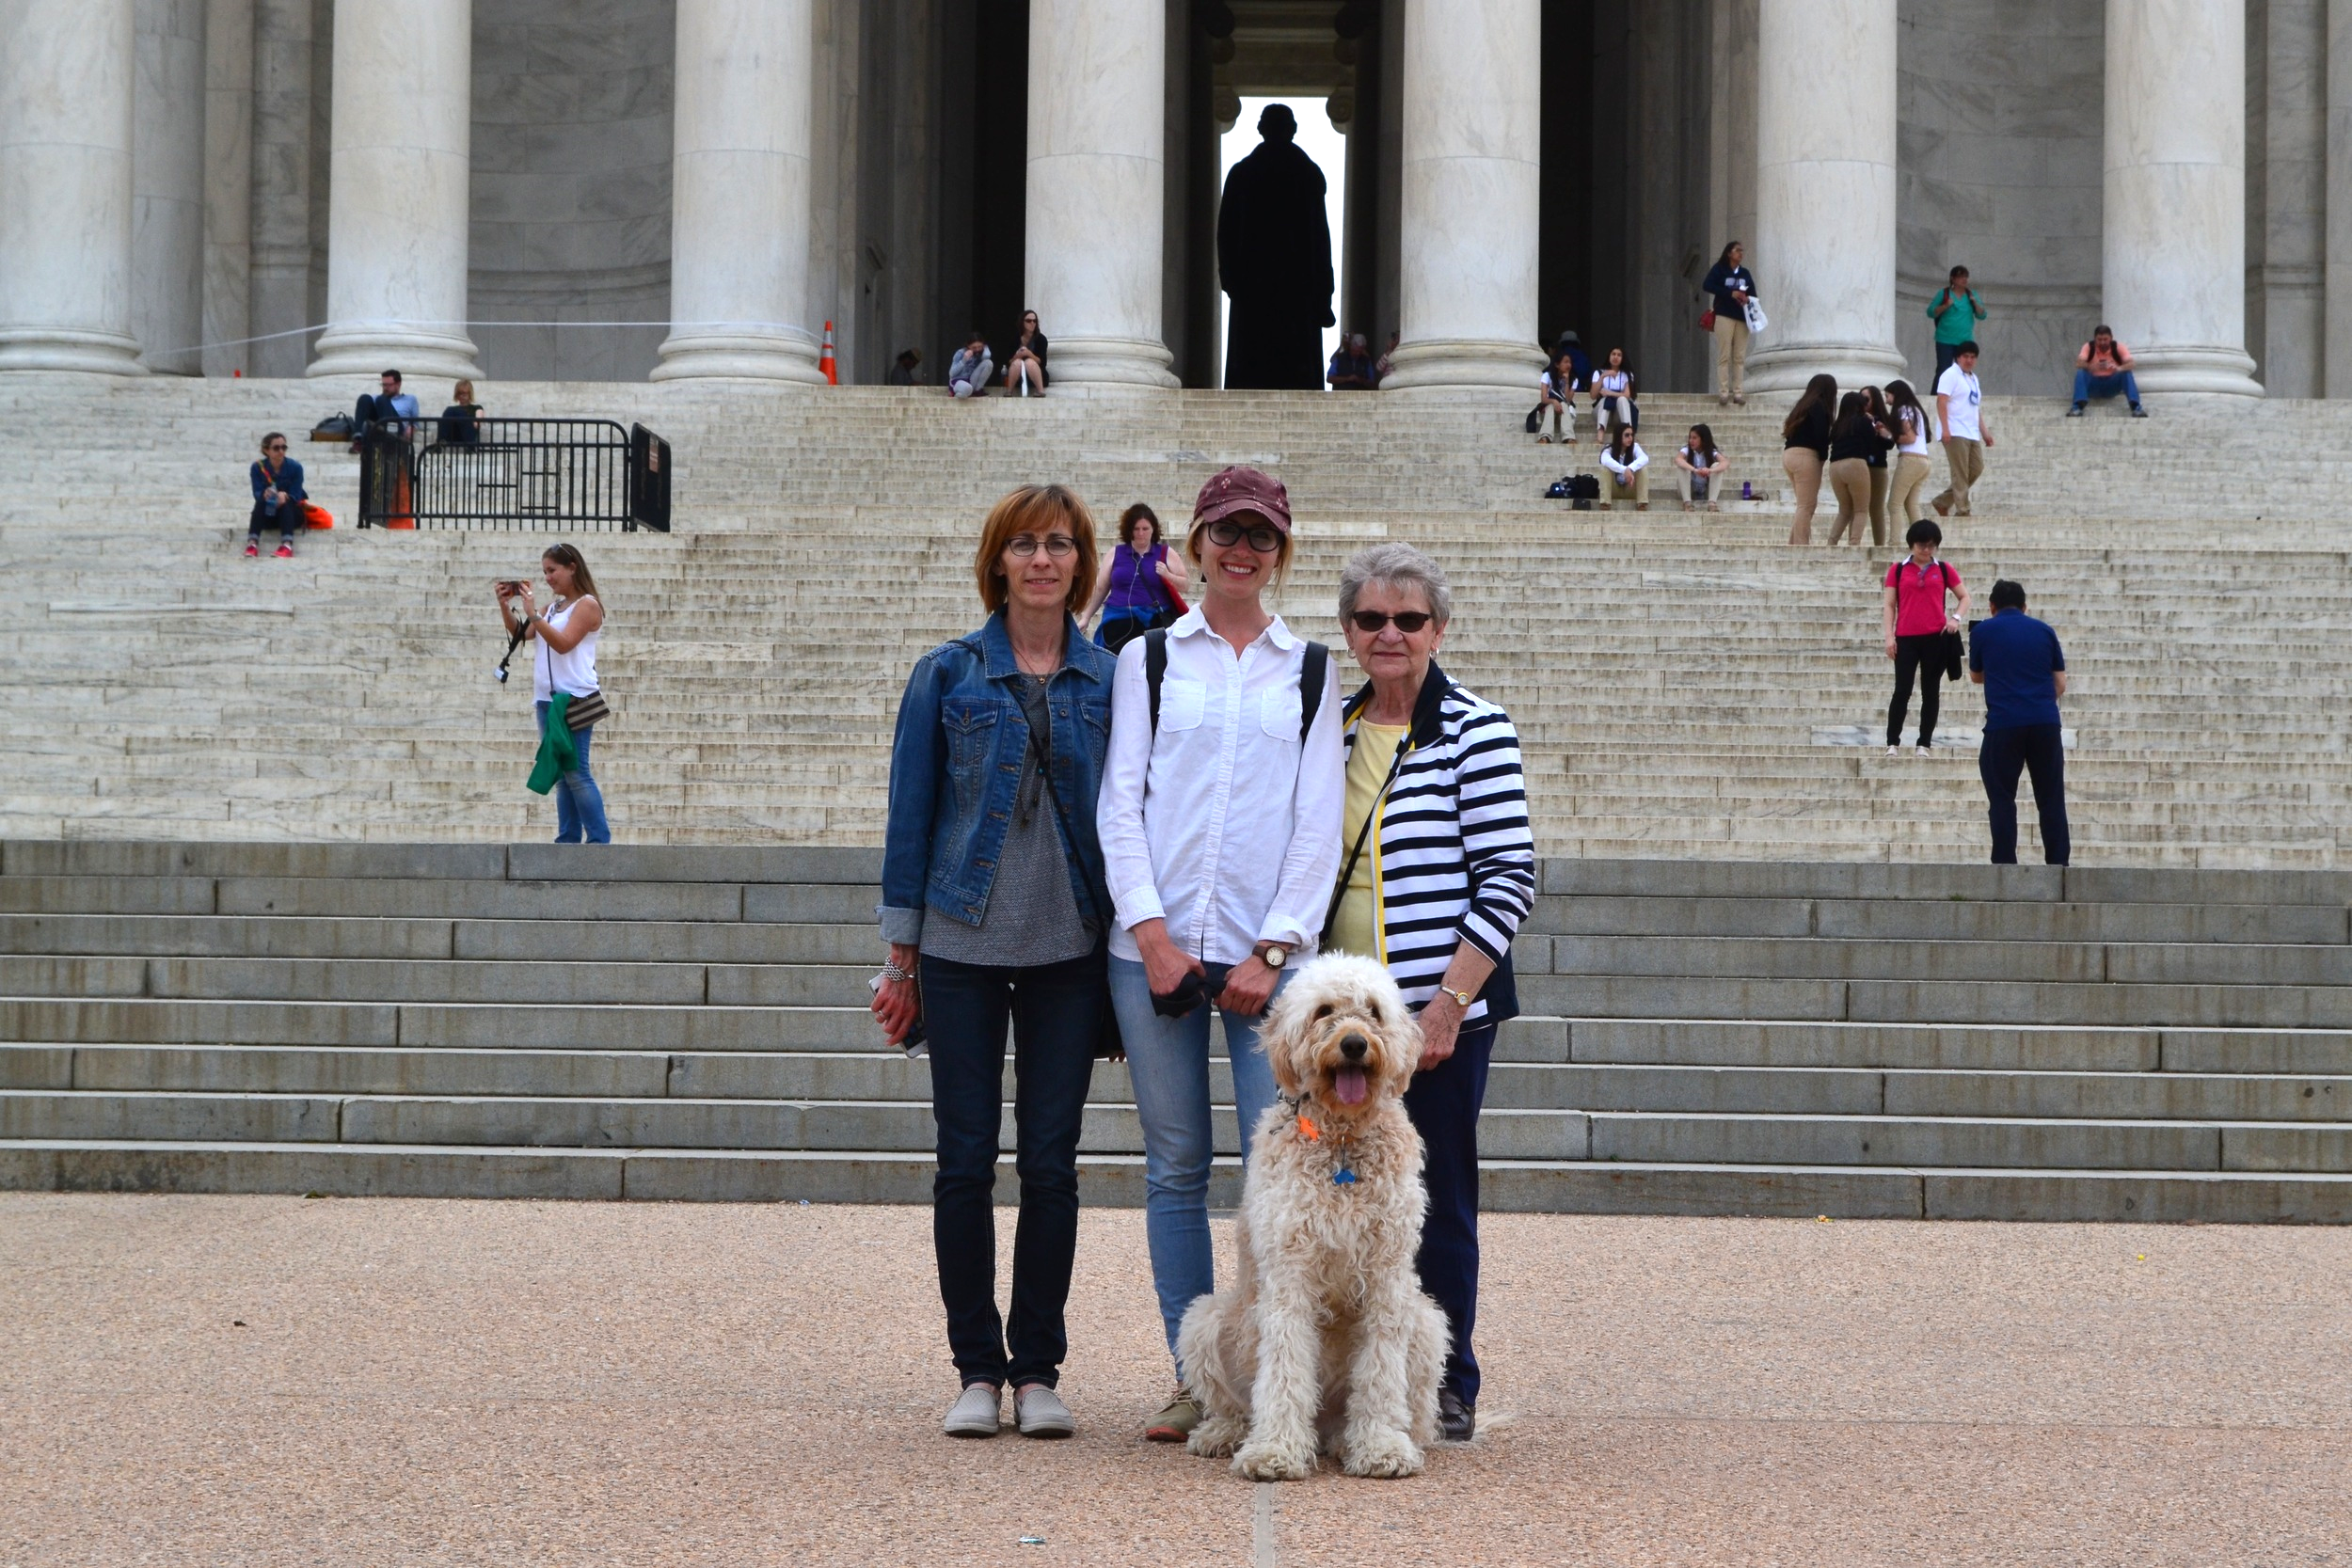 Three generation of women visit D.C. Costello, of course, tags along.